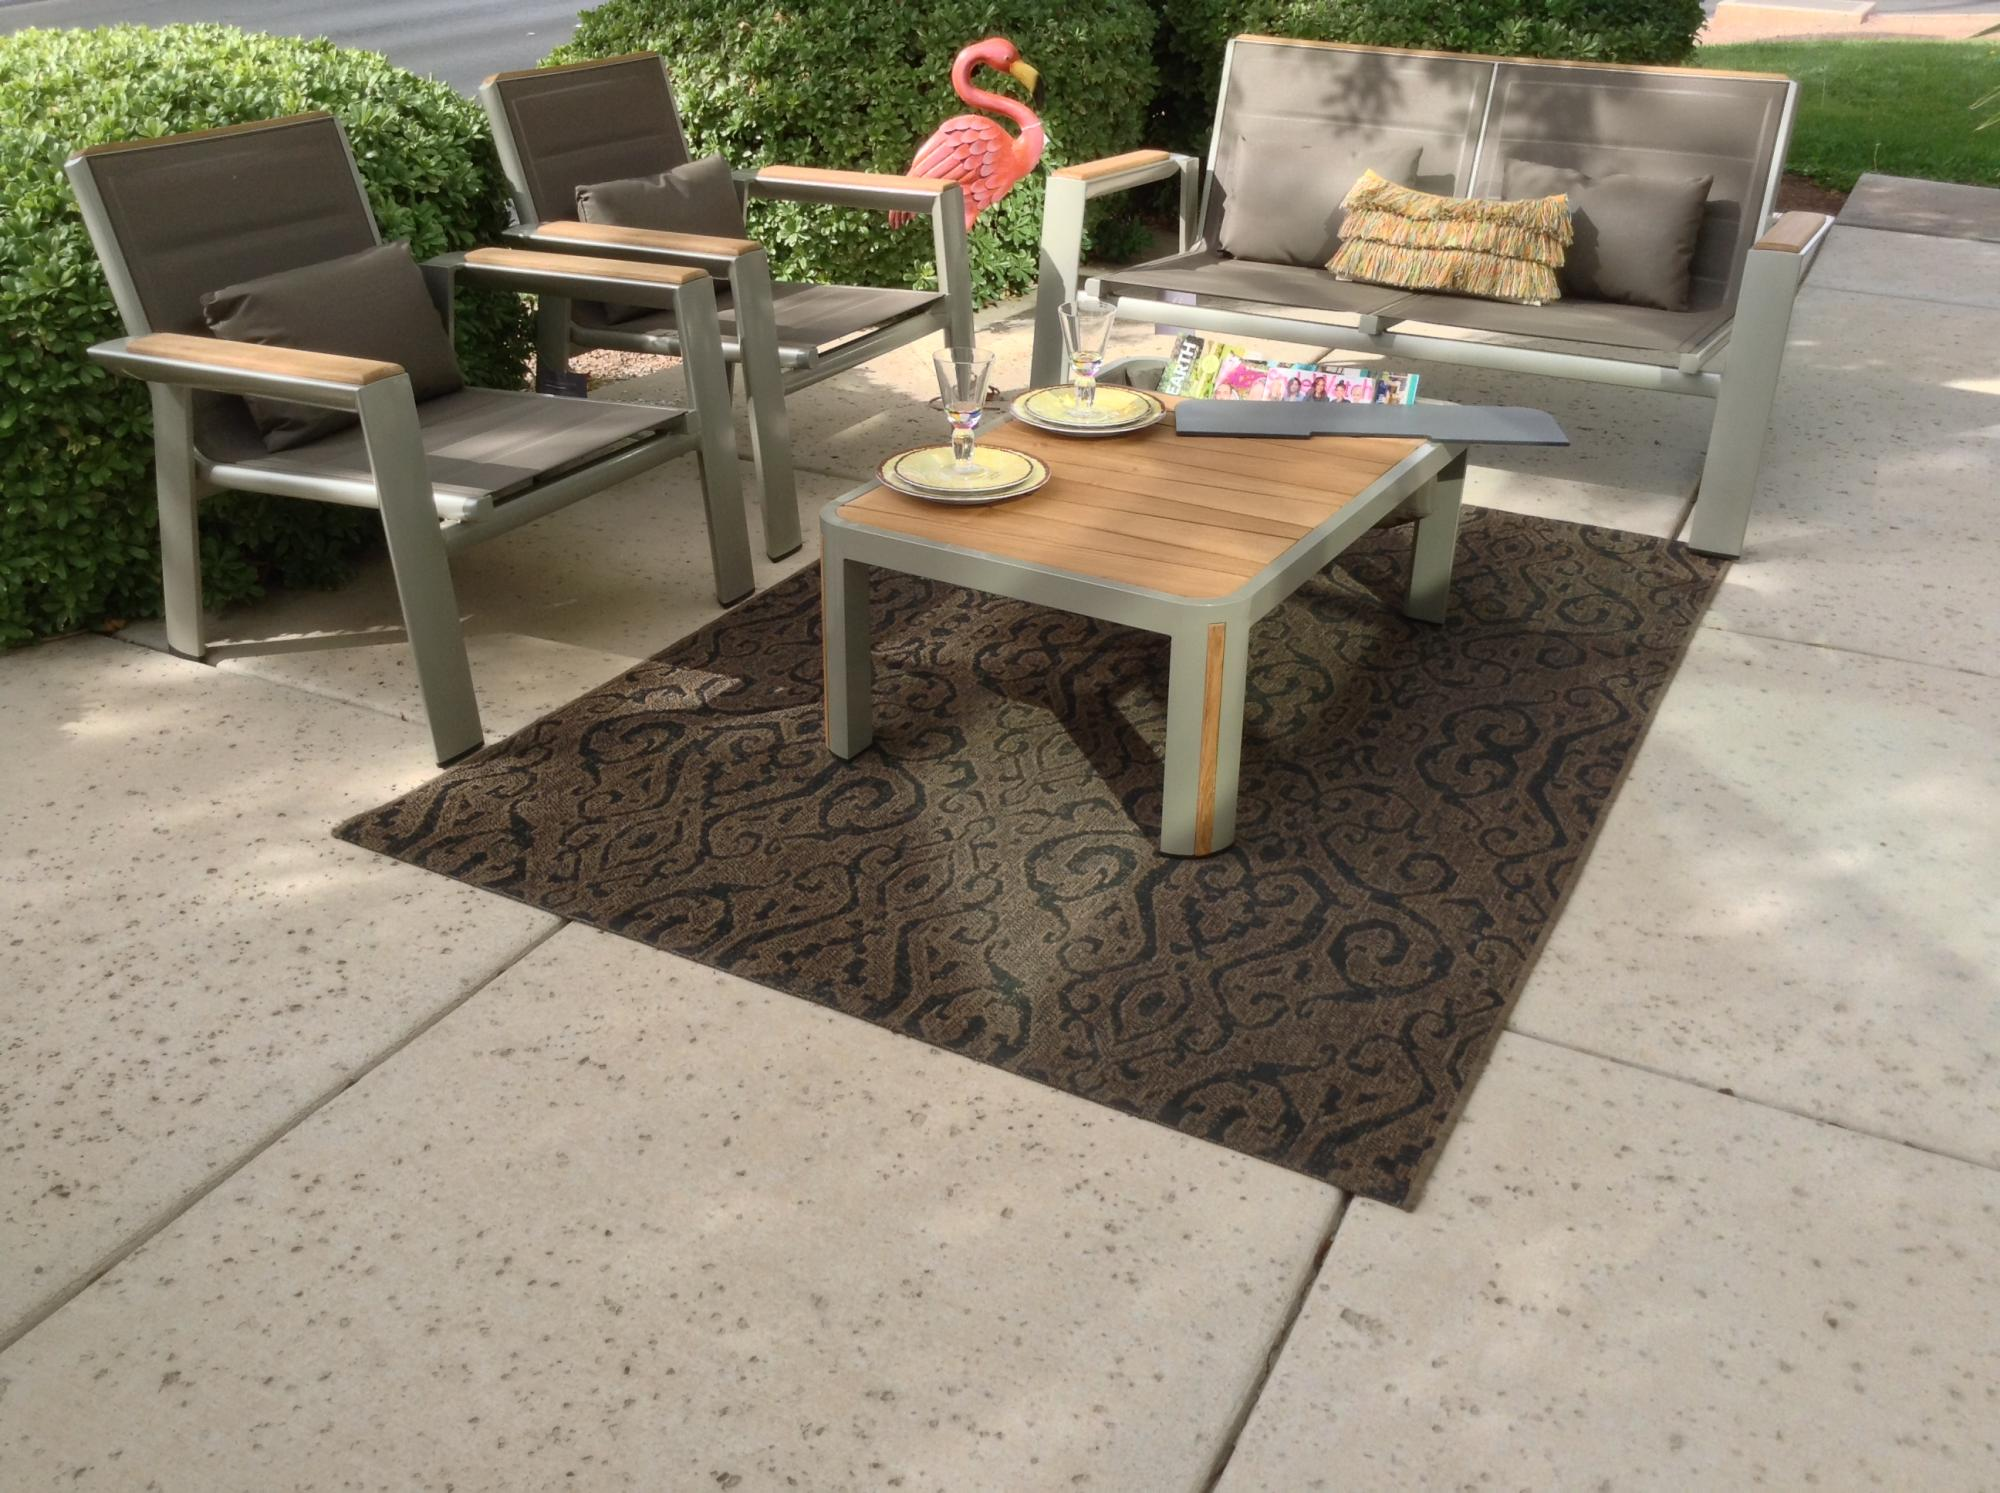 48 Luxury Patio Furniture Las Vegas Graphics Patio Design Central